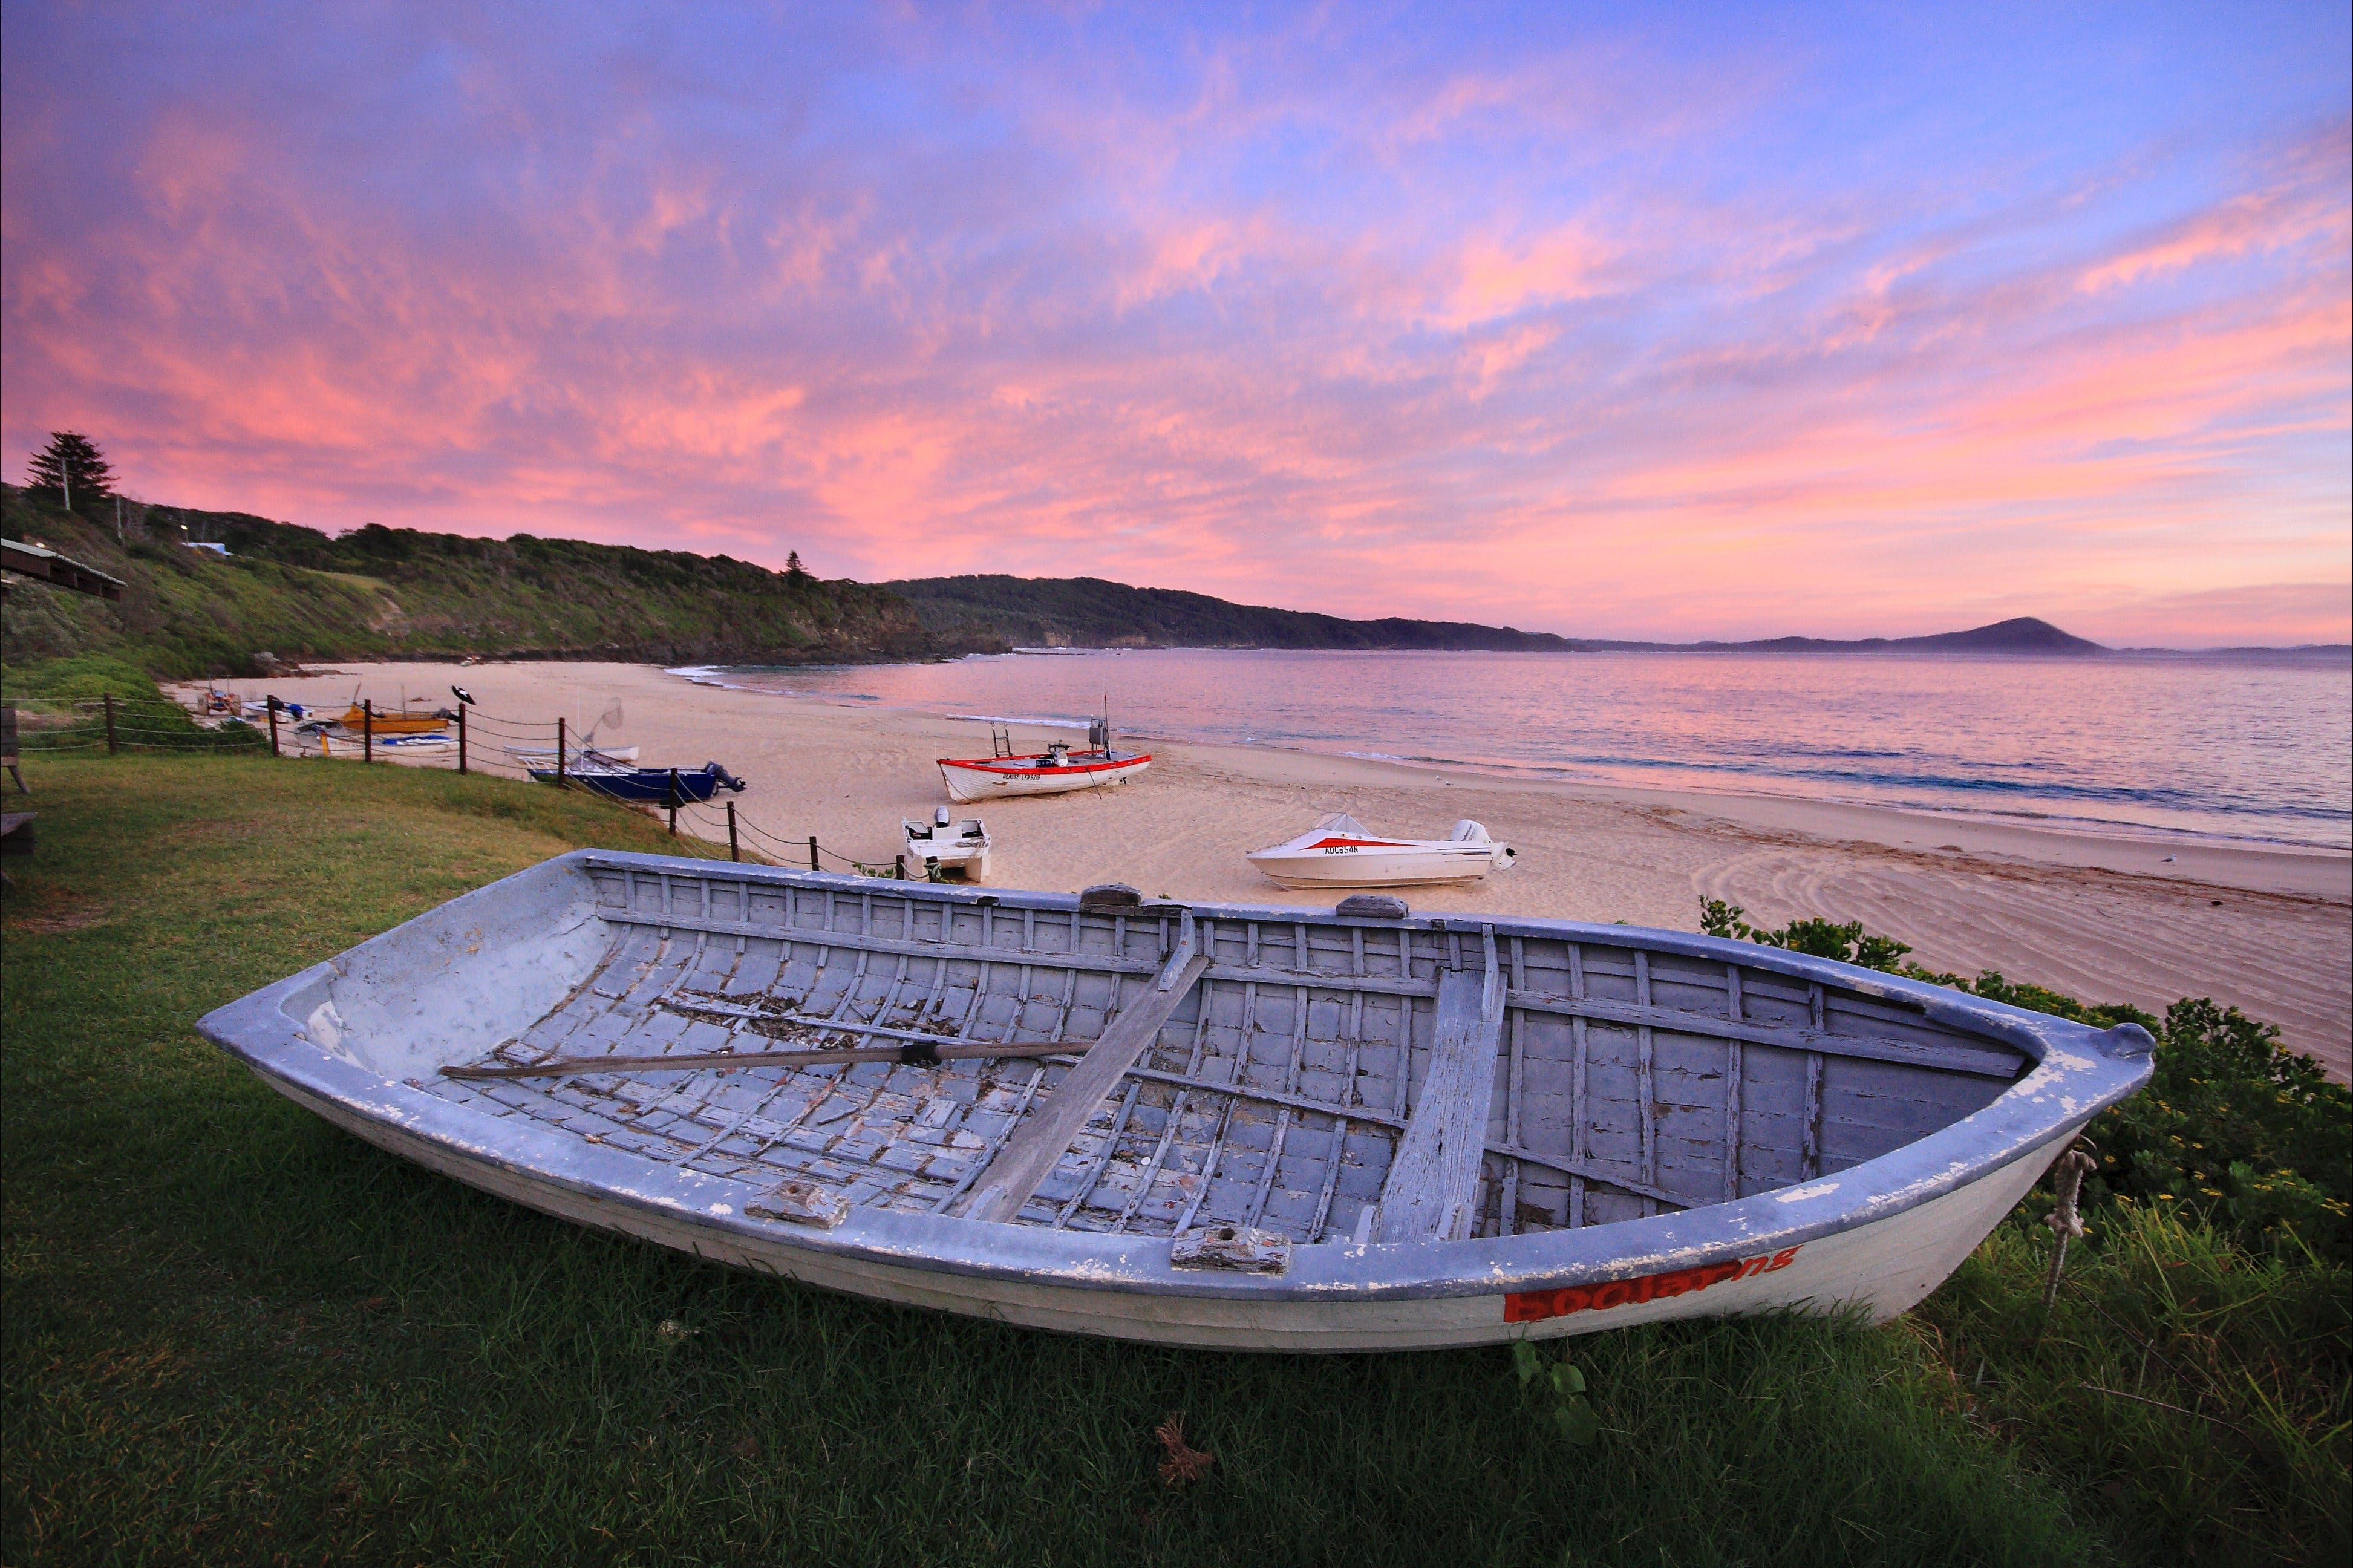 Boat Beach - VIC Tourism